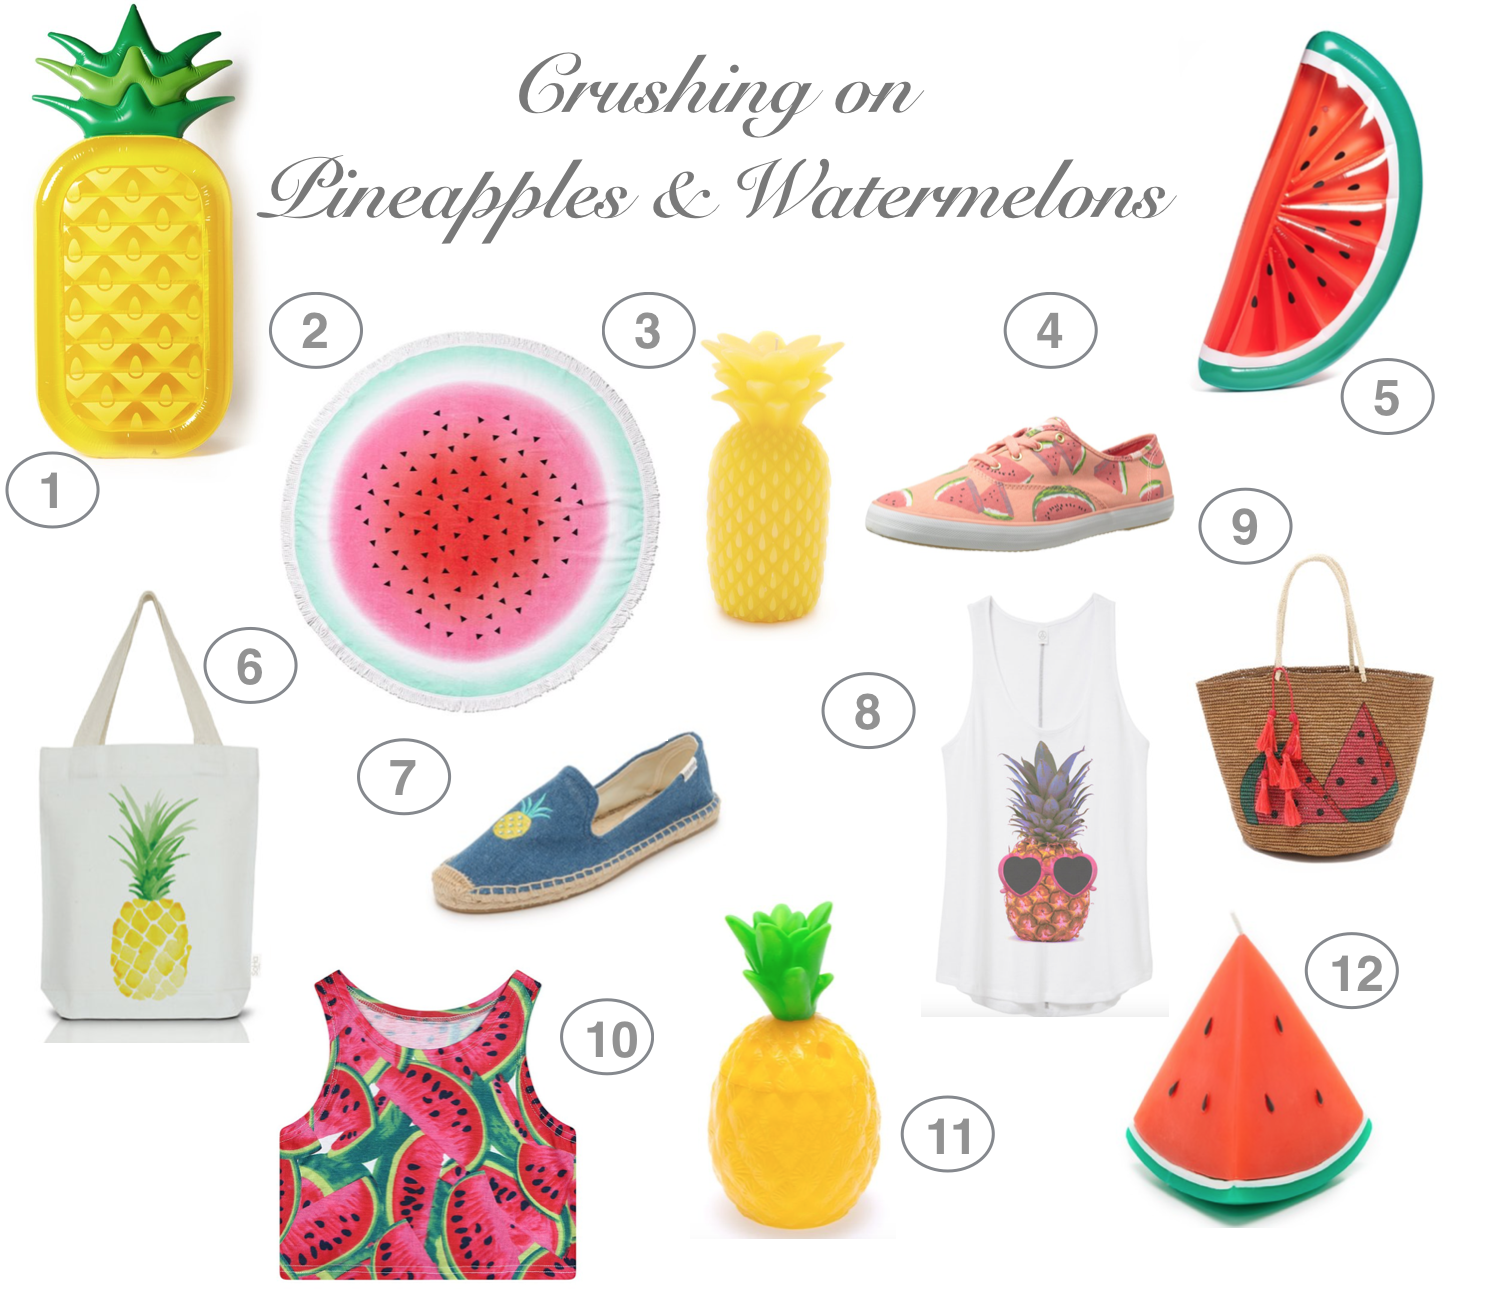 Dress Up Buttercup // A Houston-based fashion and inspiration blog developed to daily inspire your own personal style by Dede Raad | Crushing On Pineapples & Watermelons